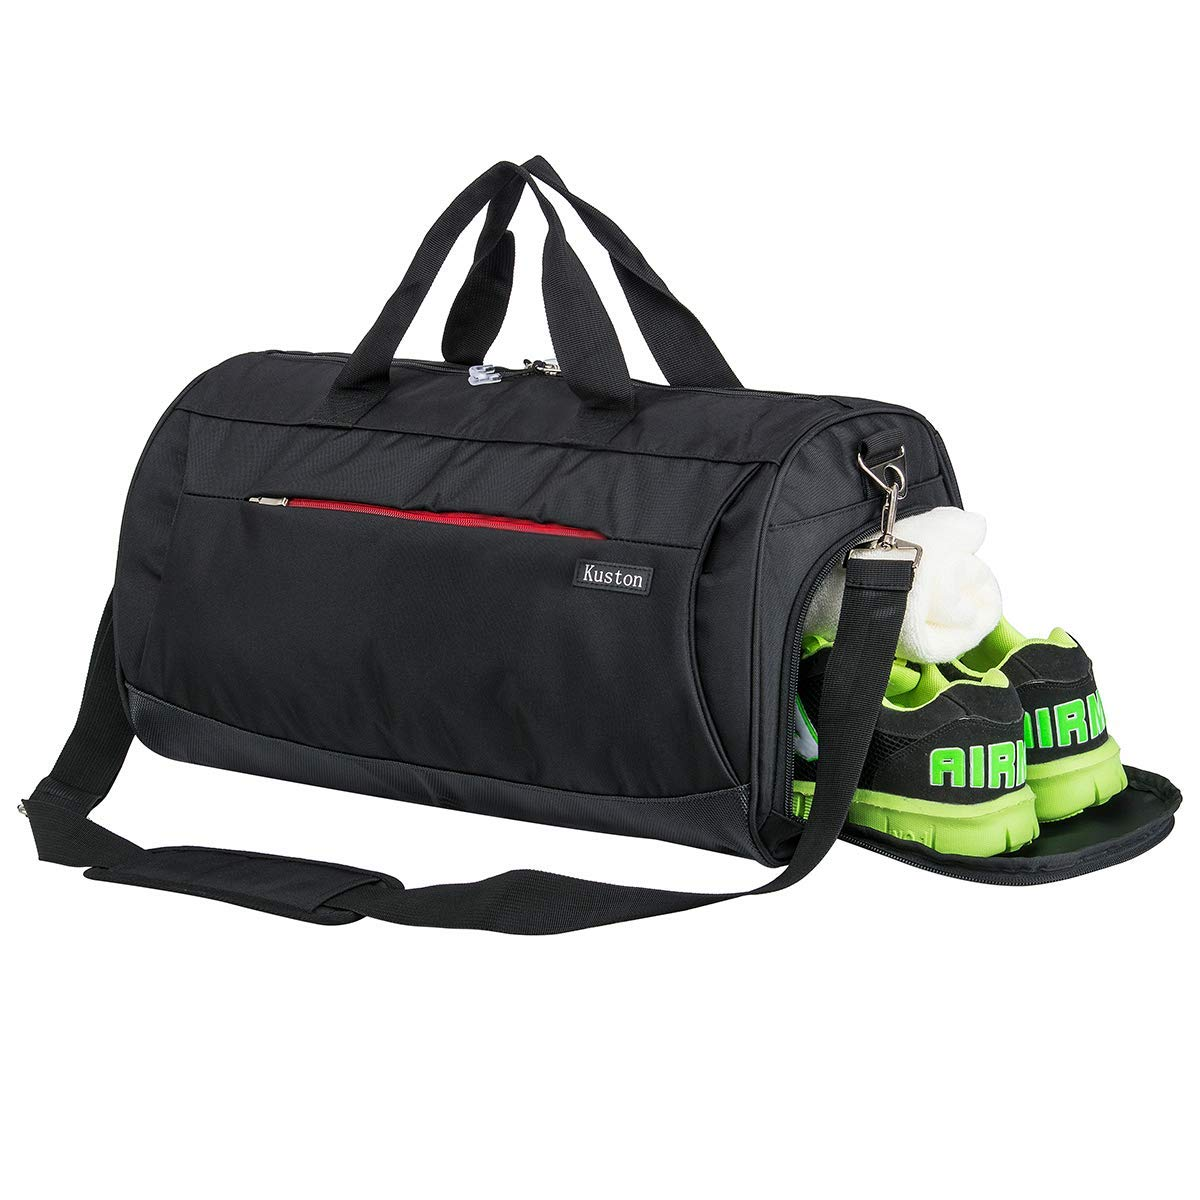 Kuston Sports Gym Bag with Shoes Compartment Travel Duffel Bag